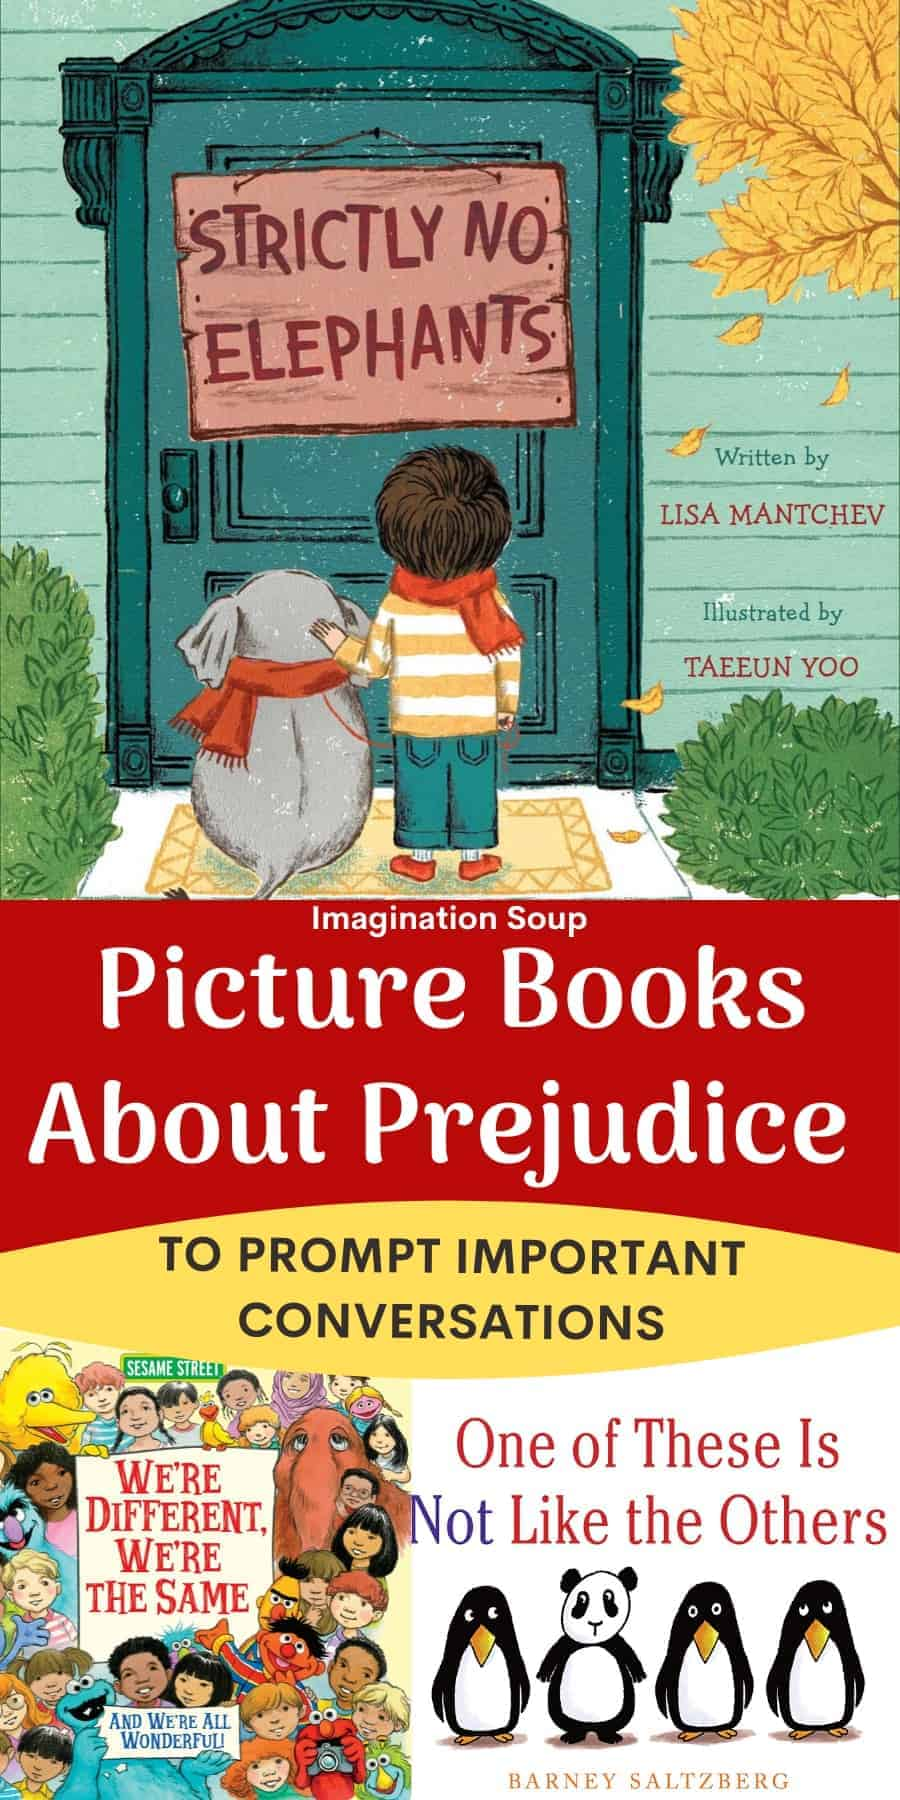 picture books for kids about racism, prejudice, and inclusion